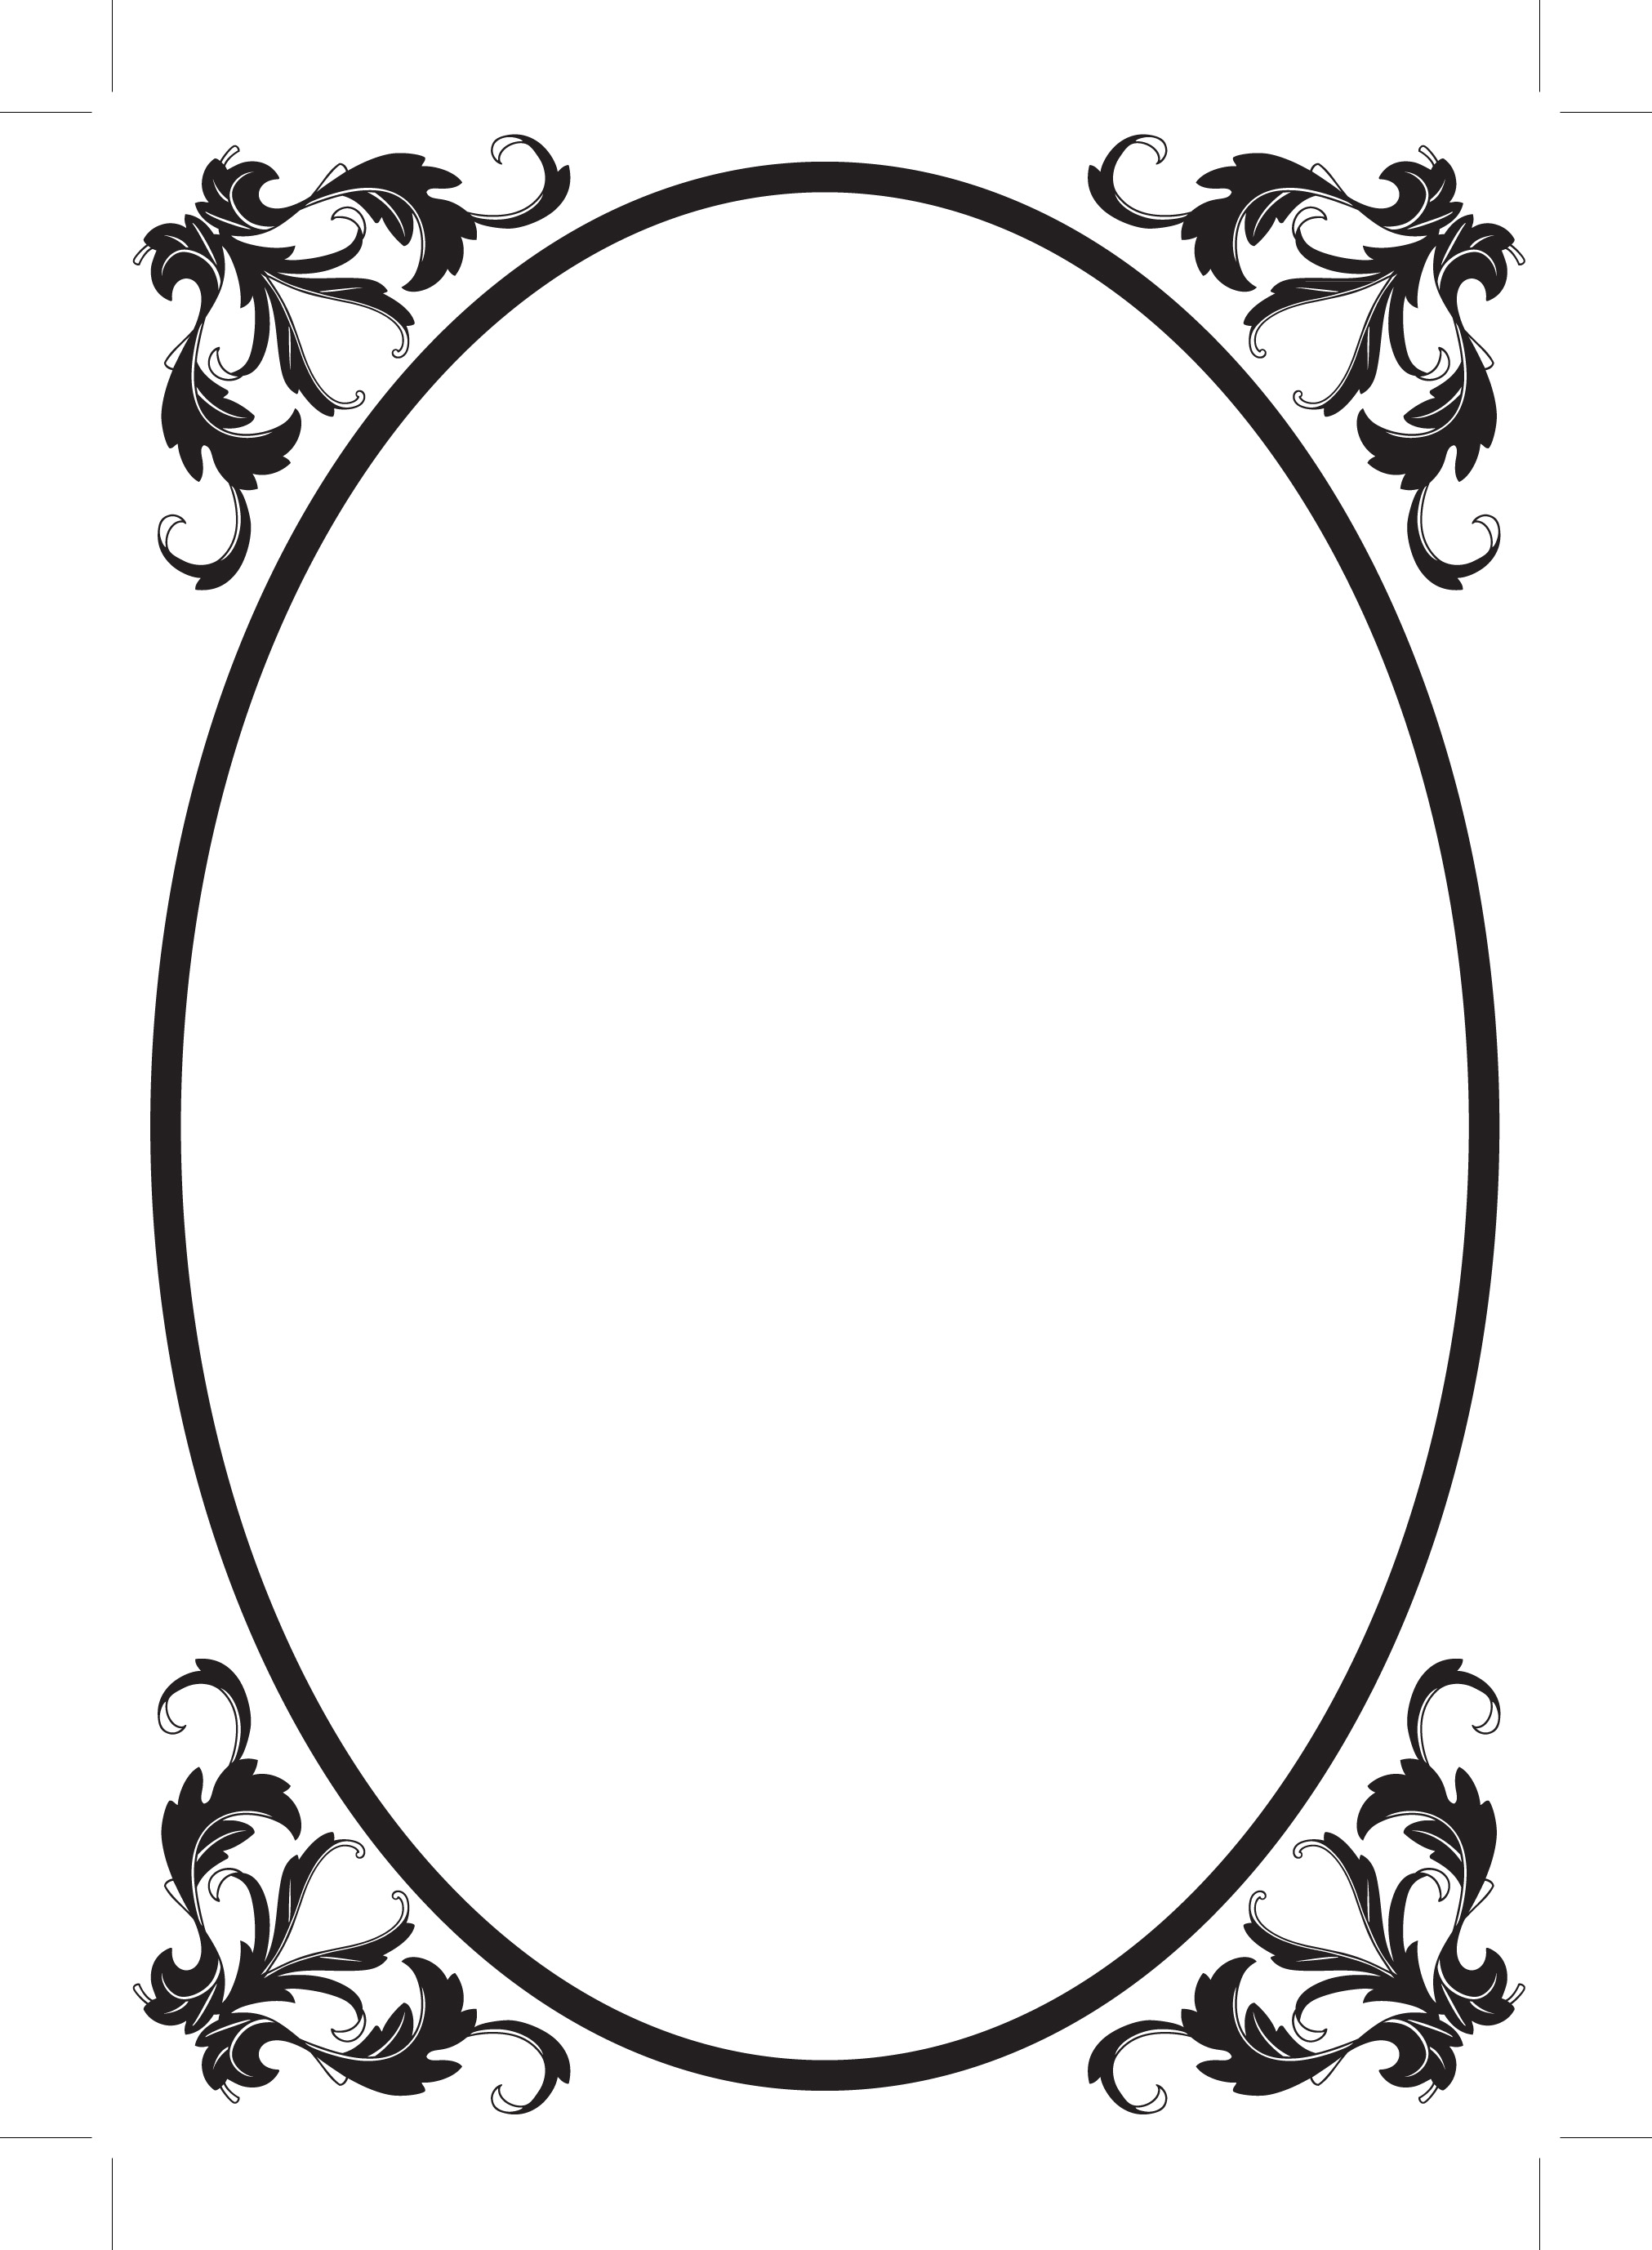 Wood border clipart free download best wood border clipart on 2023x2755 oval silhouette picture frames images jeuxipadfo Gallery